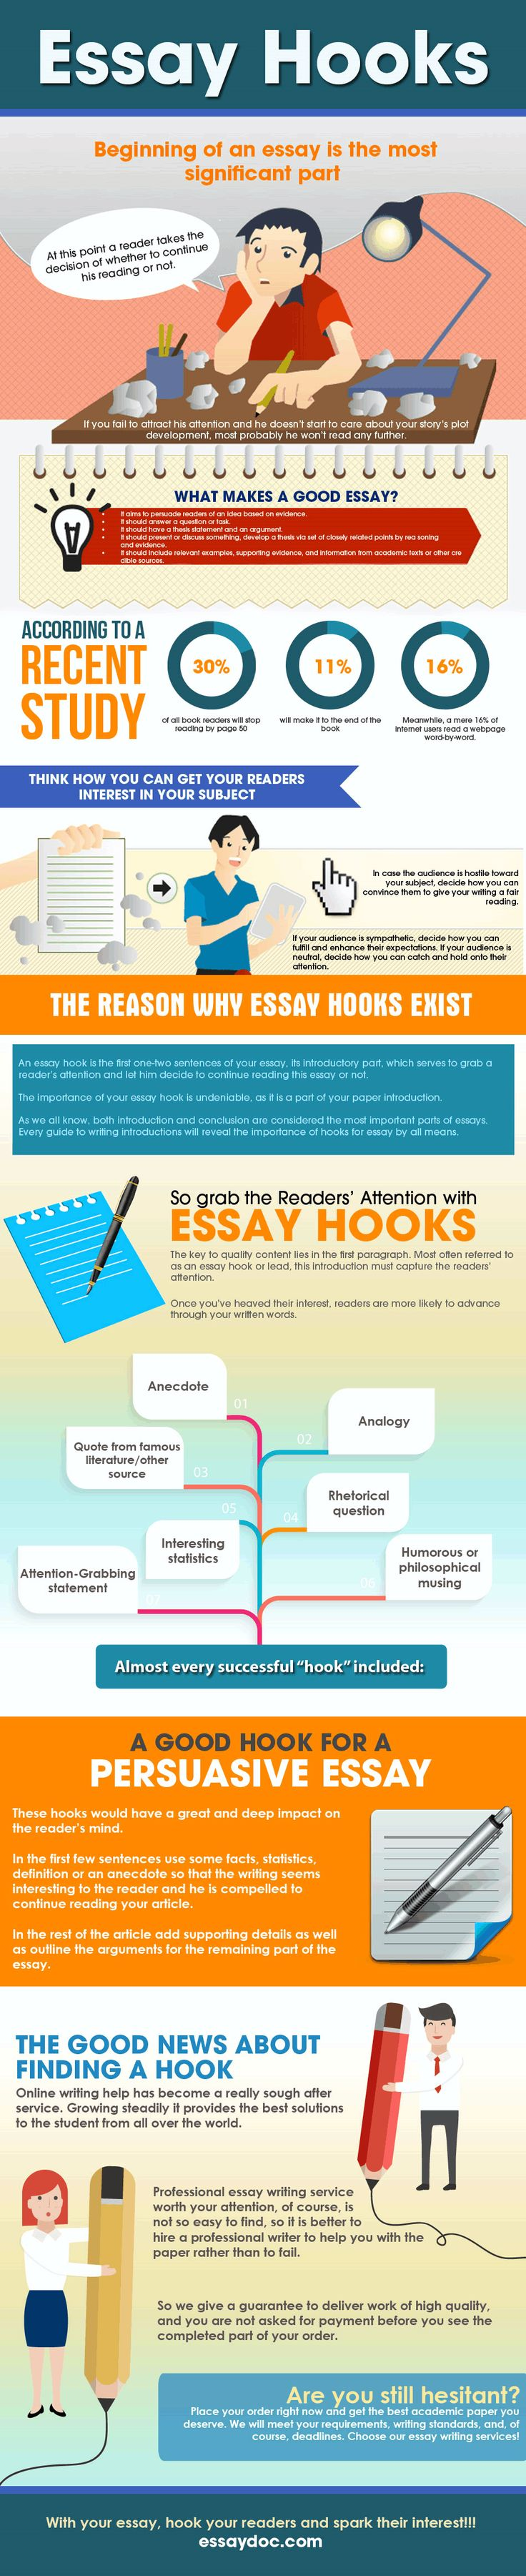 "Daneisha Woodson 2-11-16""Essay Hooks #infographic #Education"""